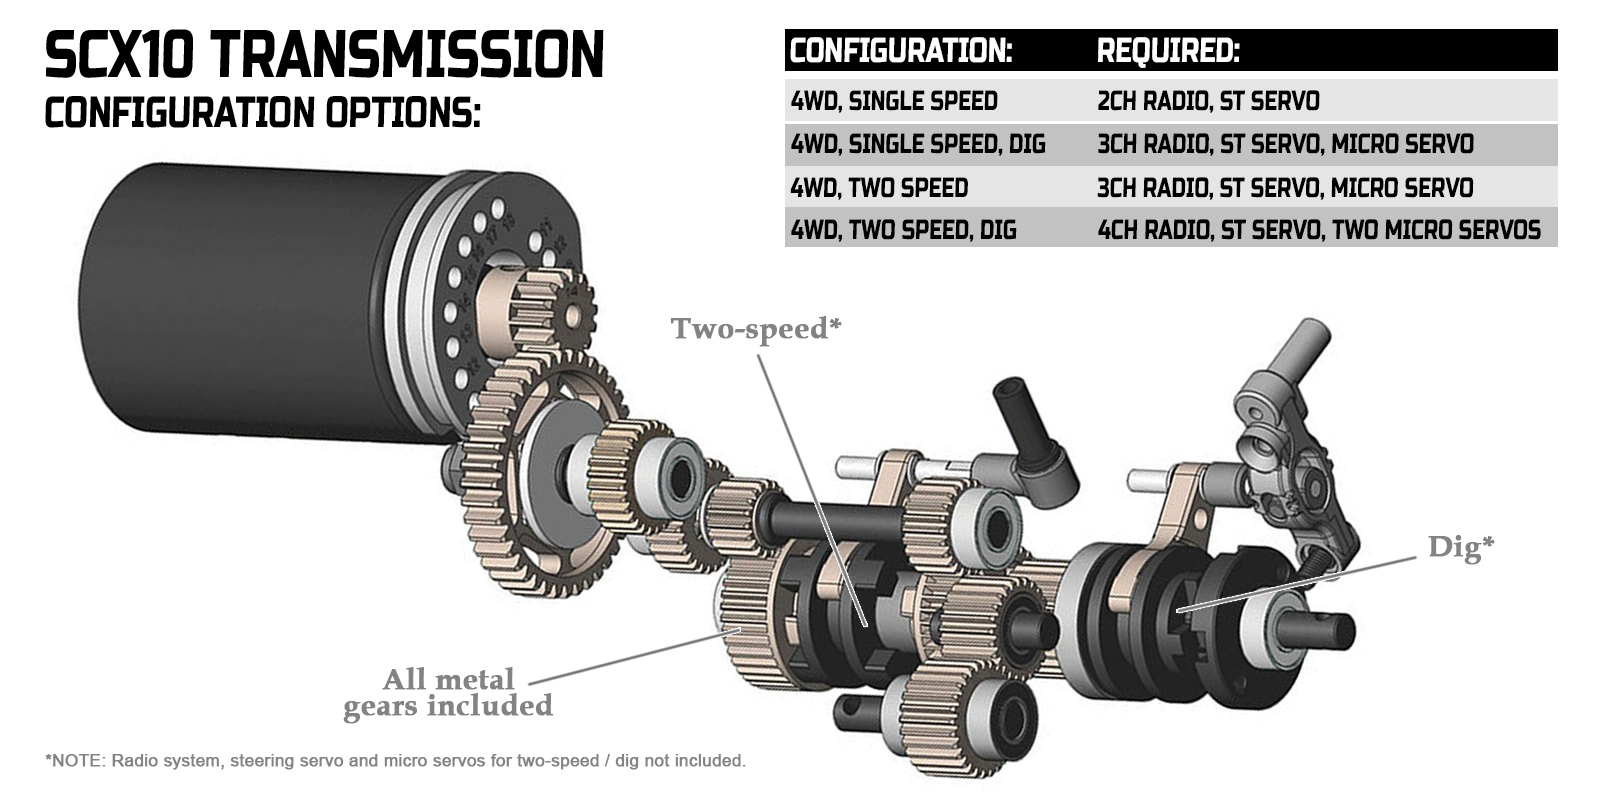 Transmission Features